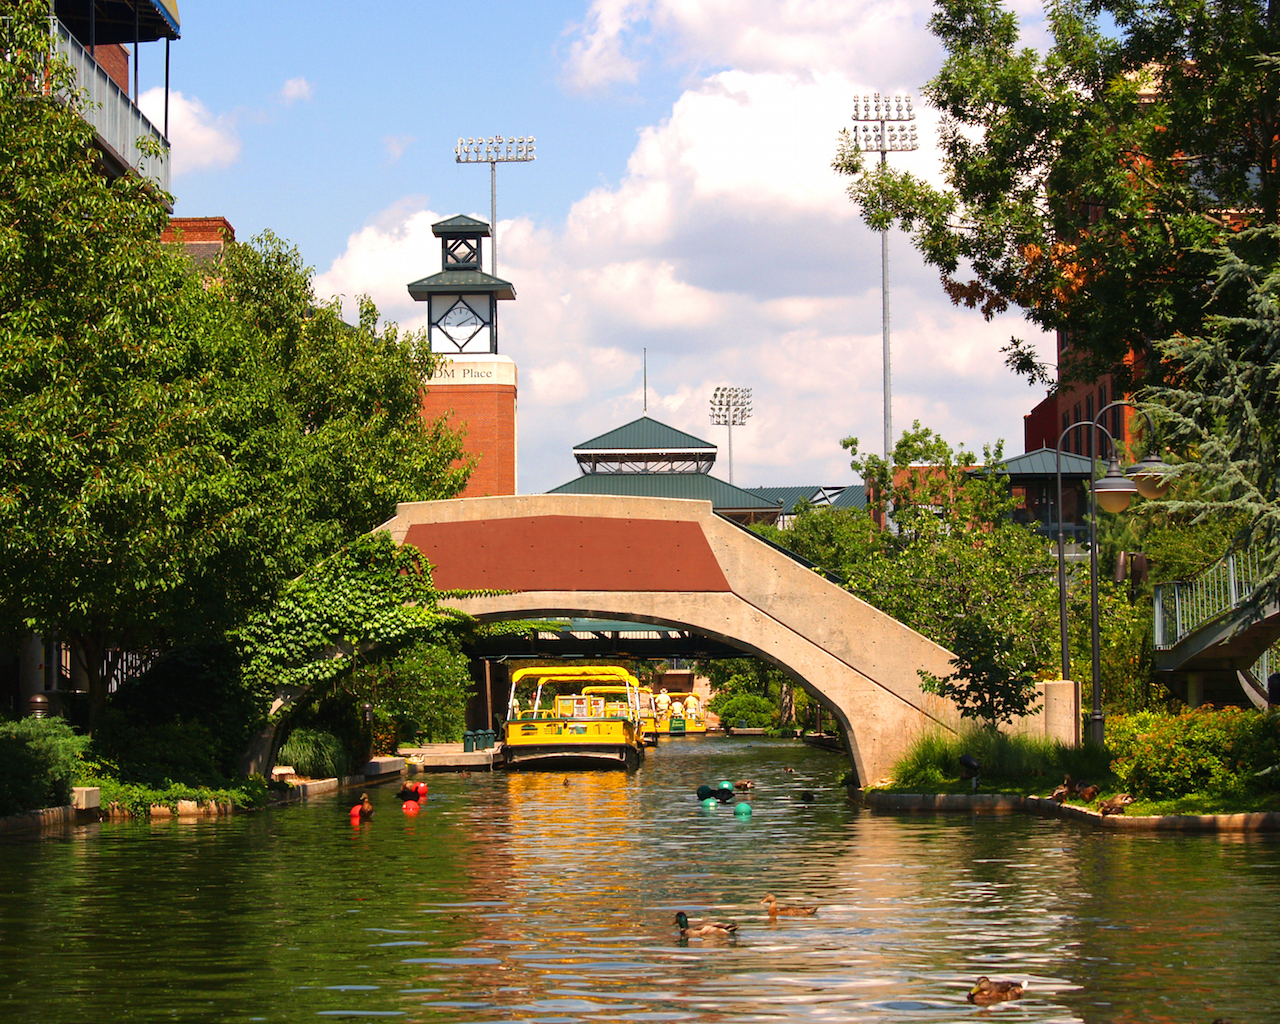 A canal in the Bricktown section of Oklahoma City USA